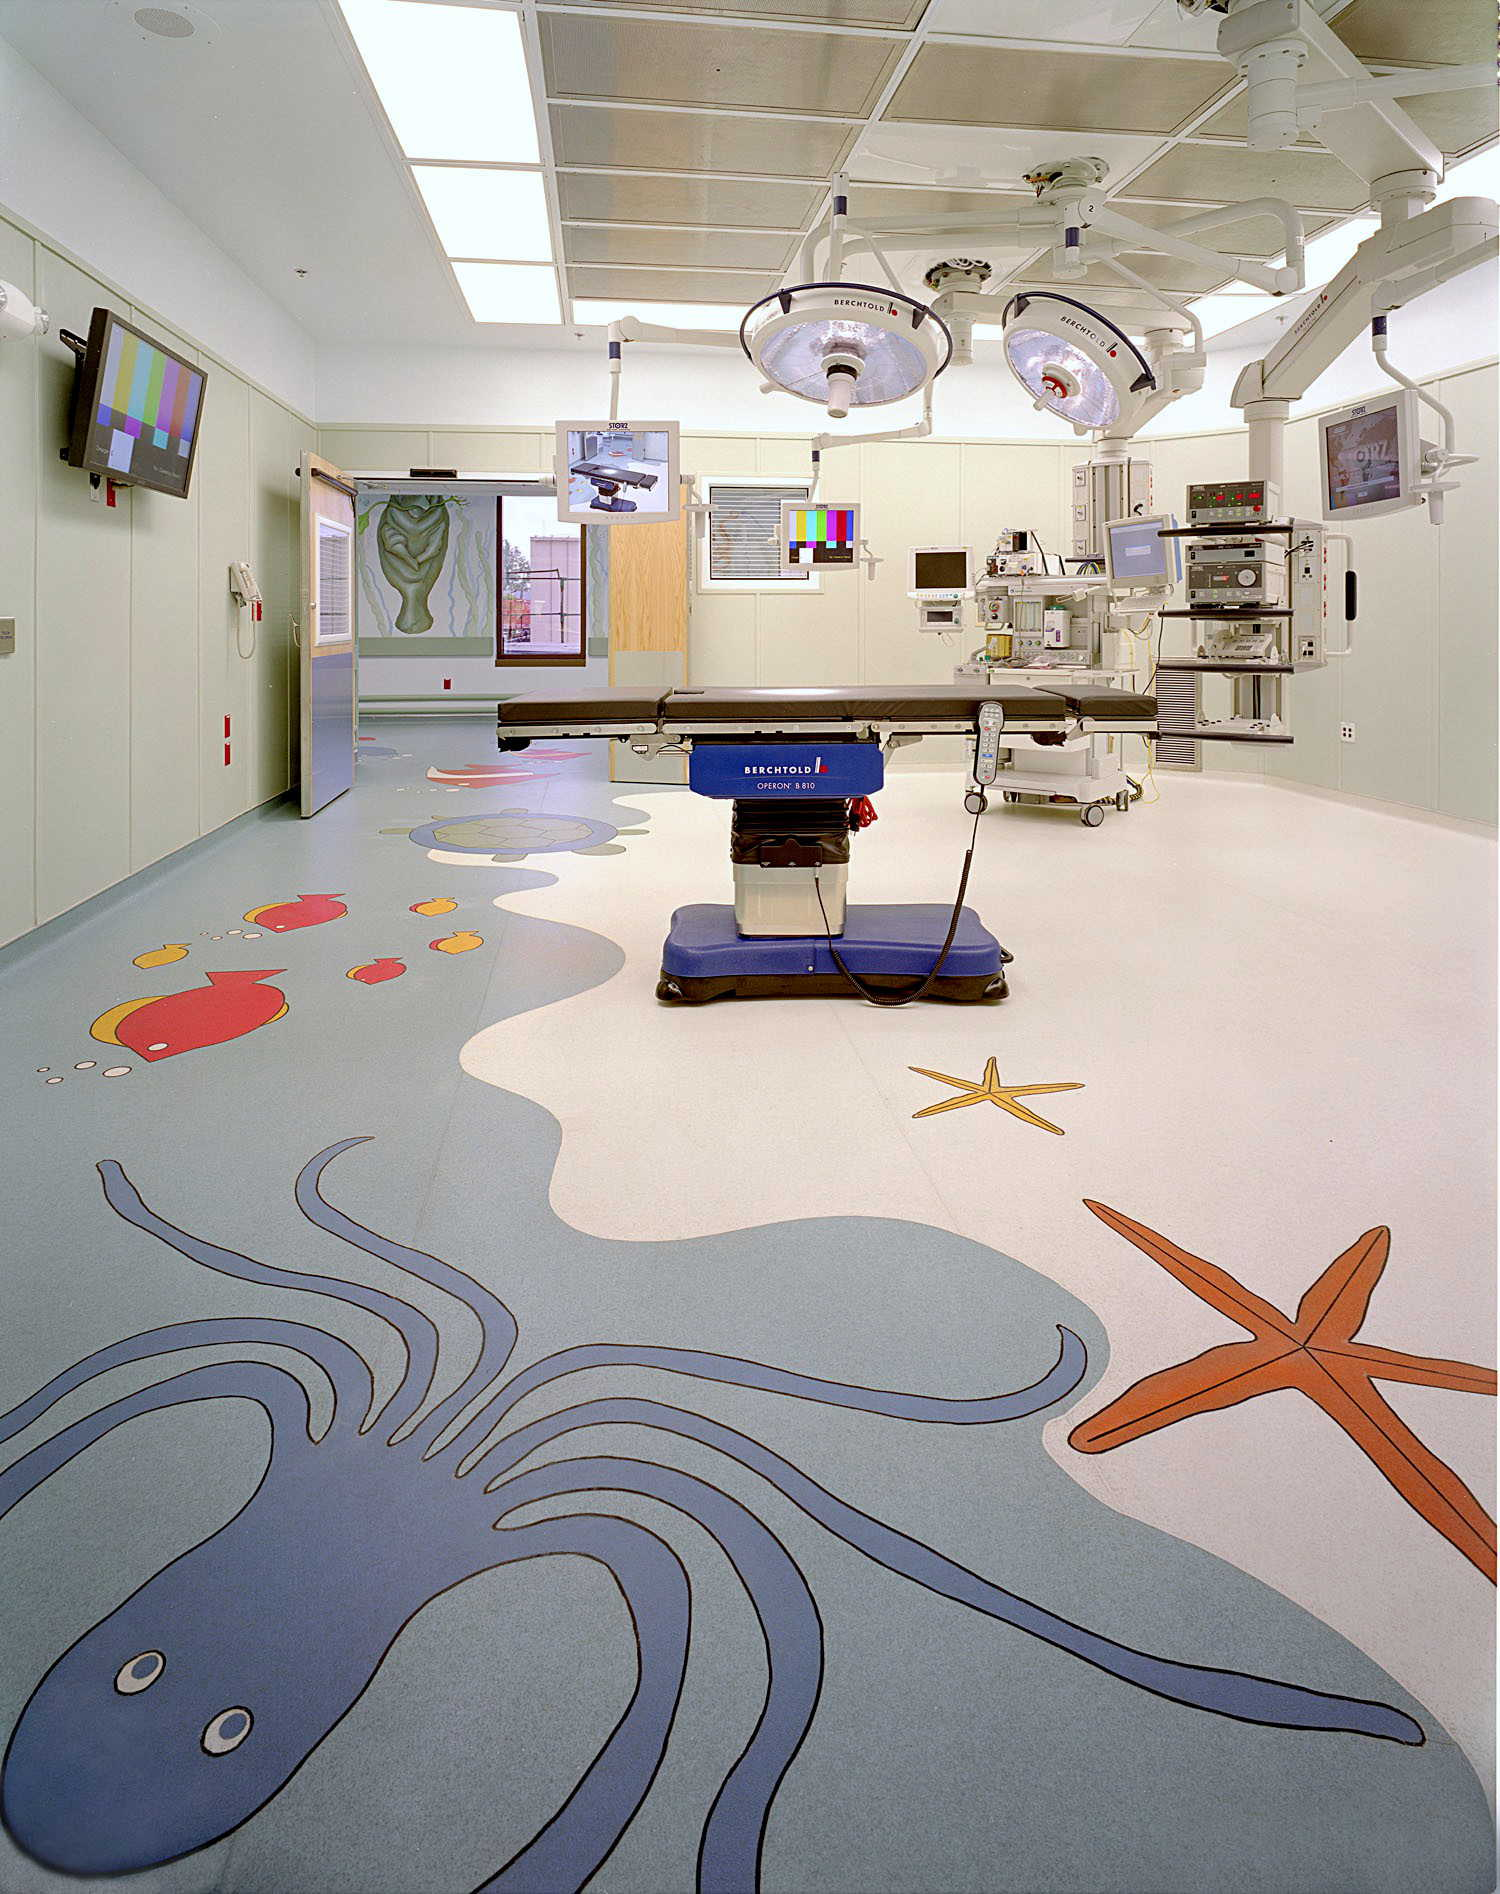 Sheet Goods Flooring Adcut